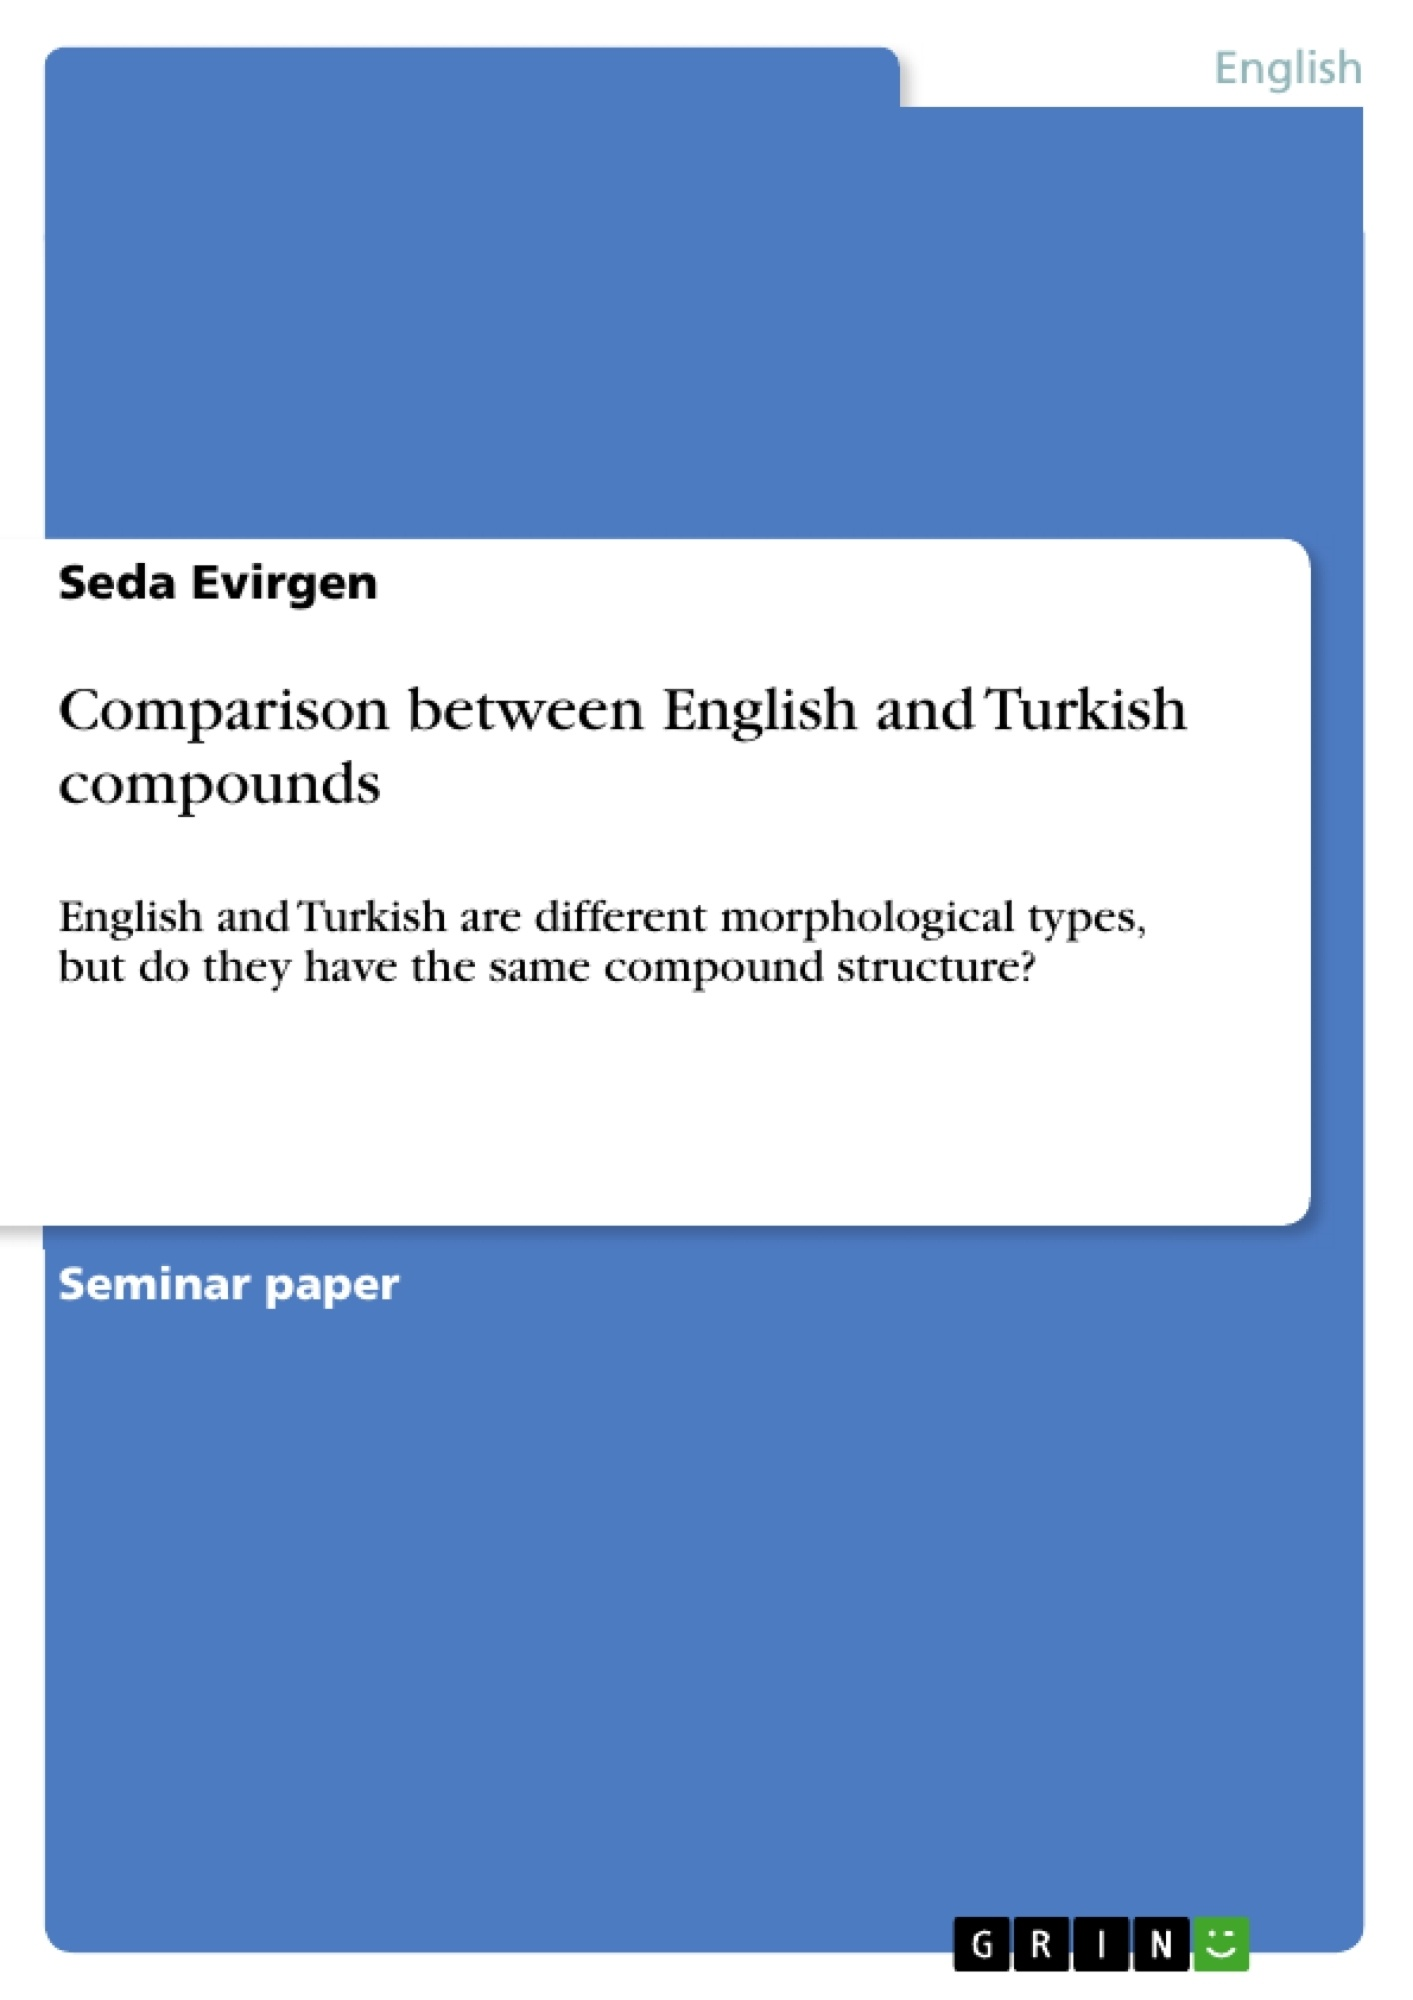 Title: Comparison between English and Turkish compounds